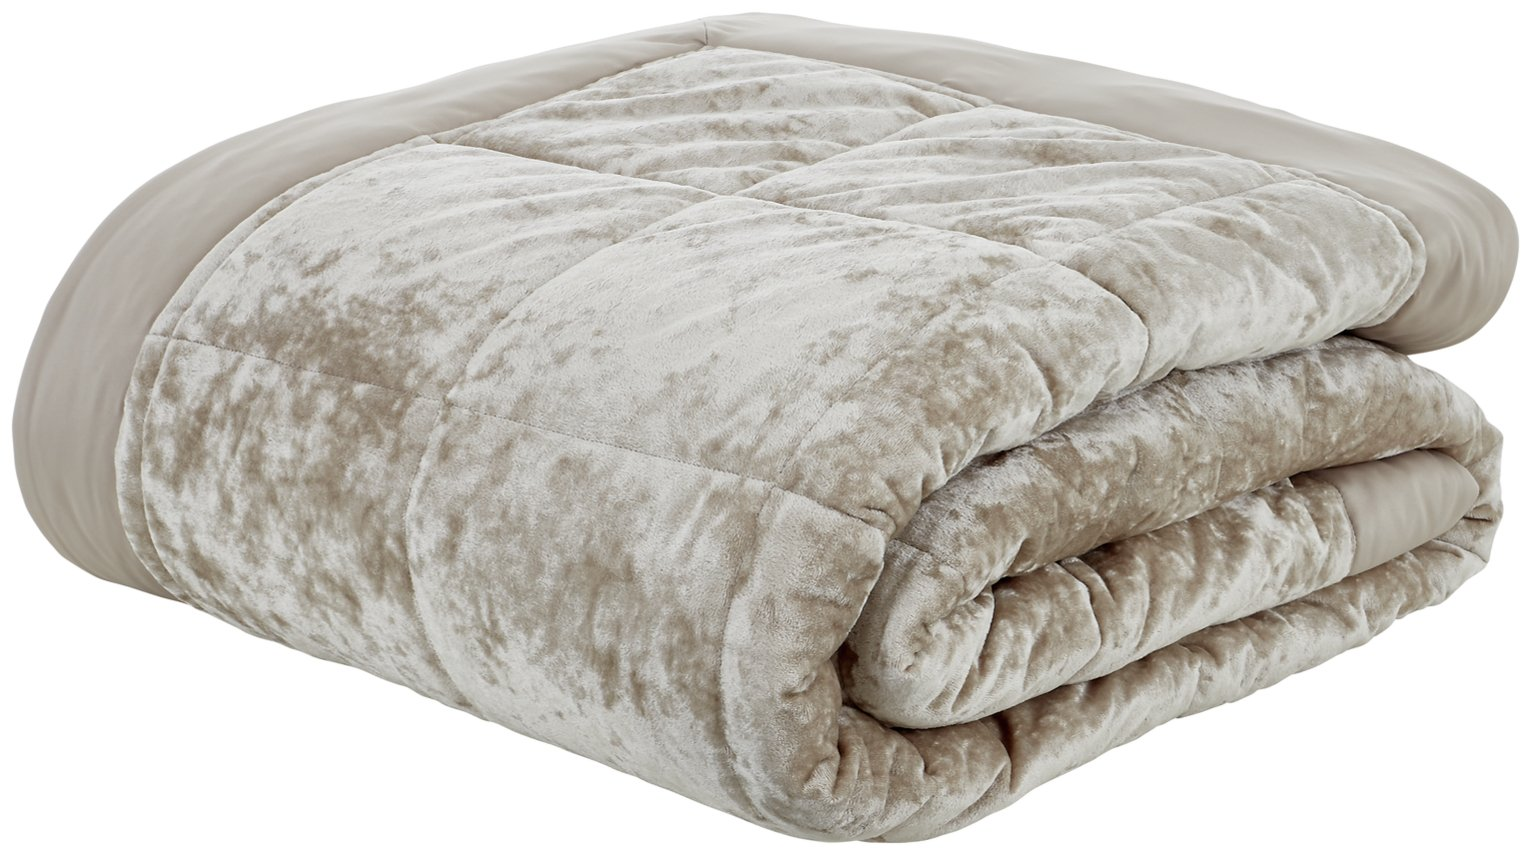 Image of Catherine Lansfield Crushed Velvet Bedspead - Natural